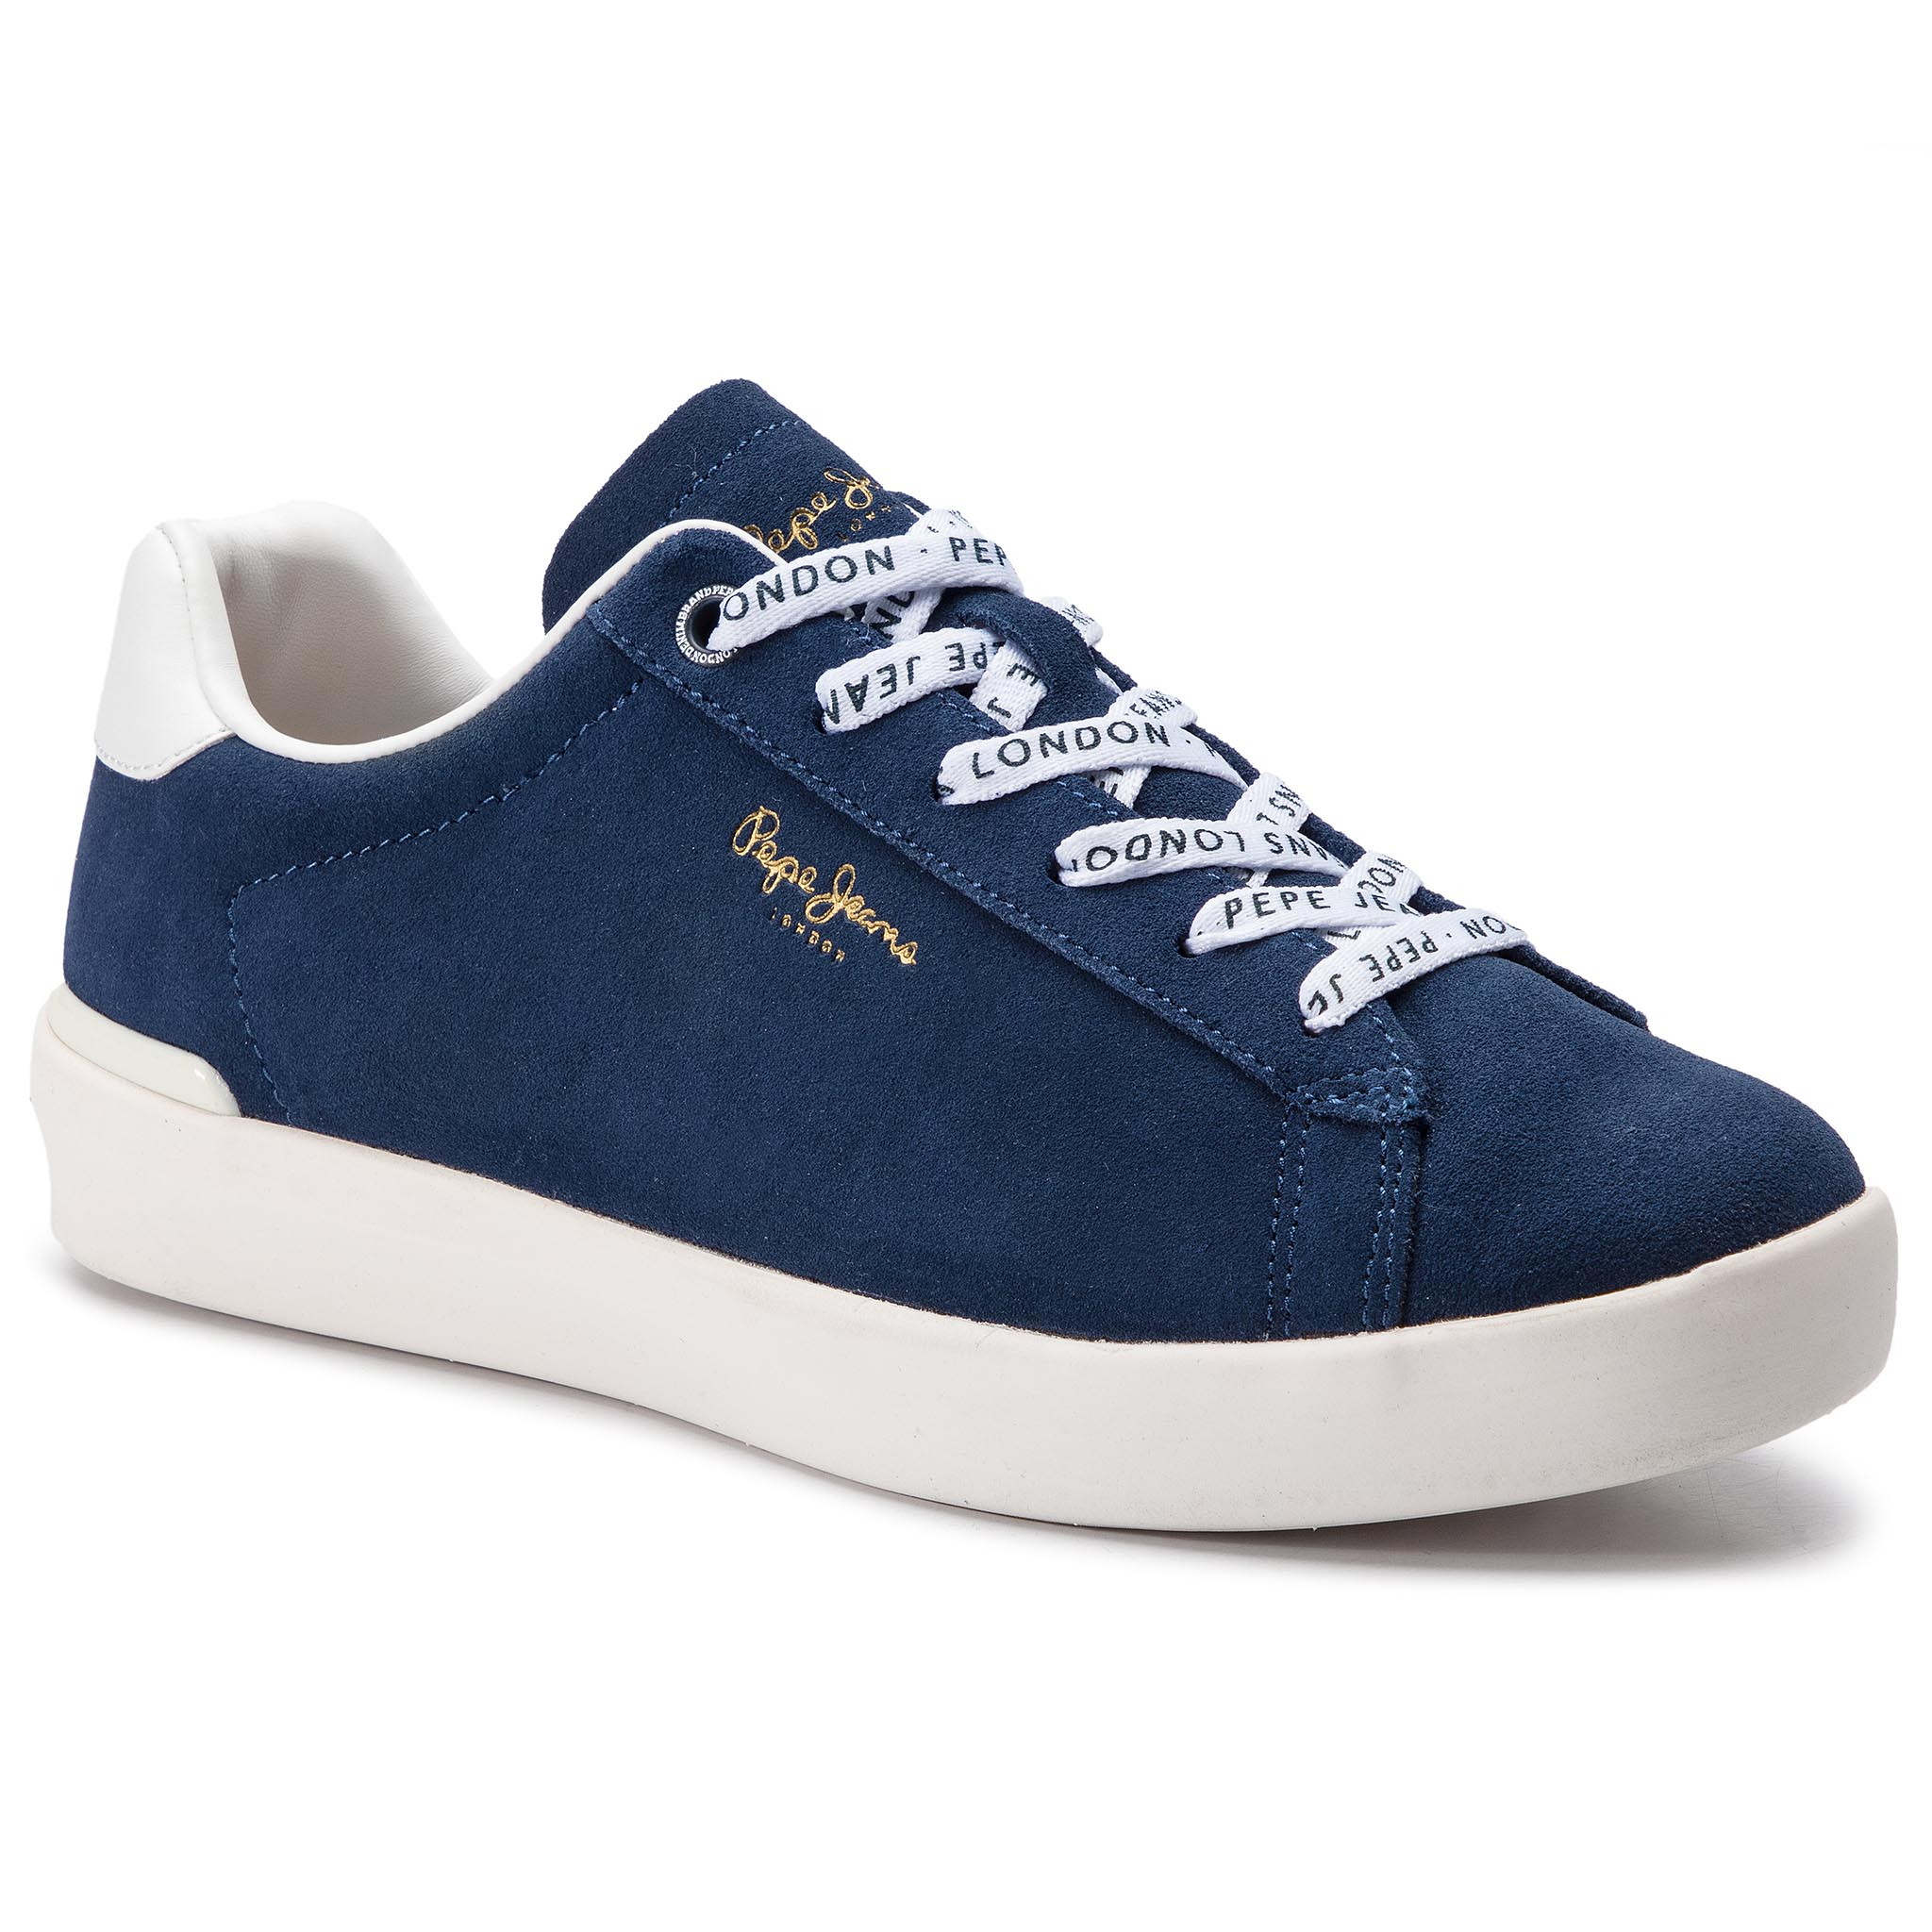 Sneakers PEPE JEANS - Roland Suede PMS30524 Ocean 588 New